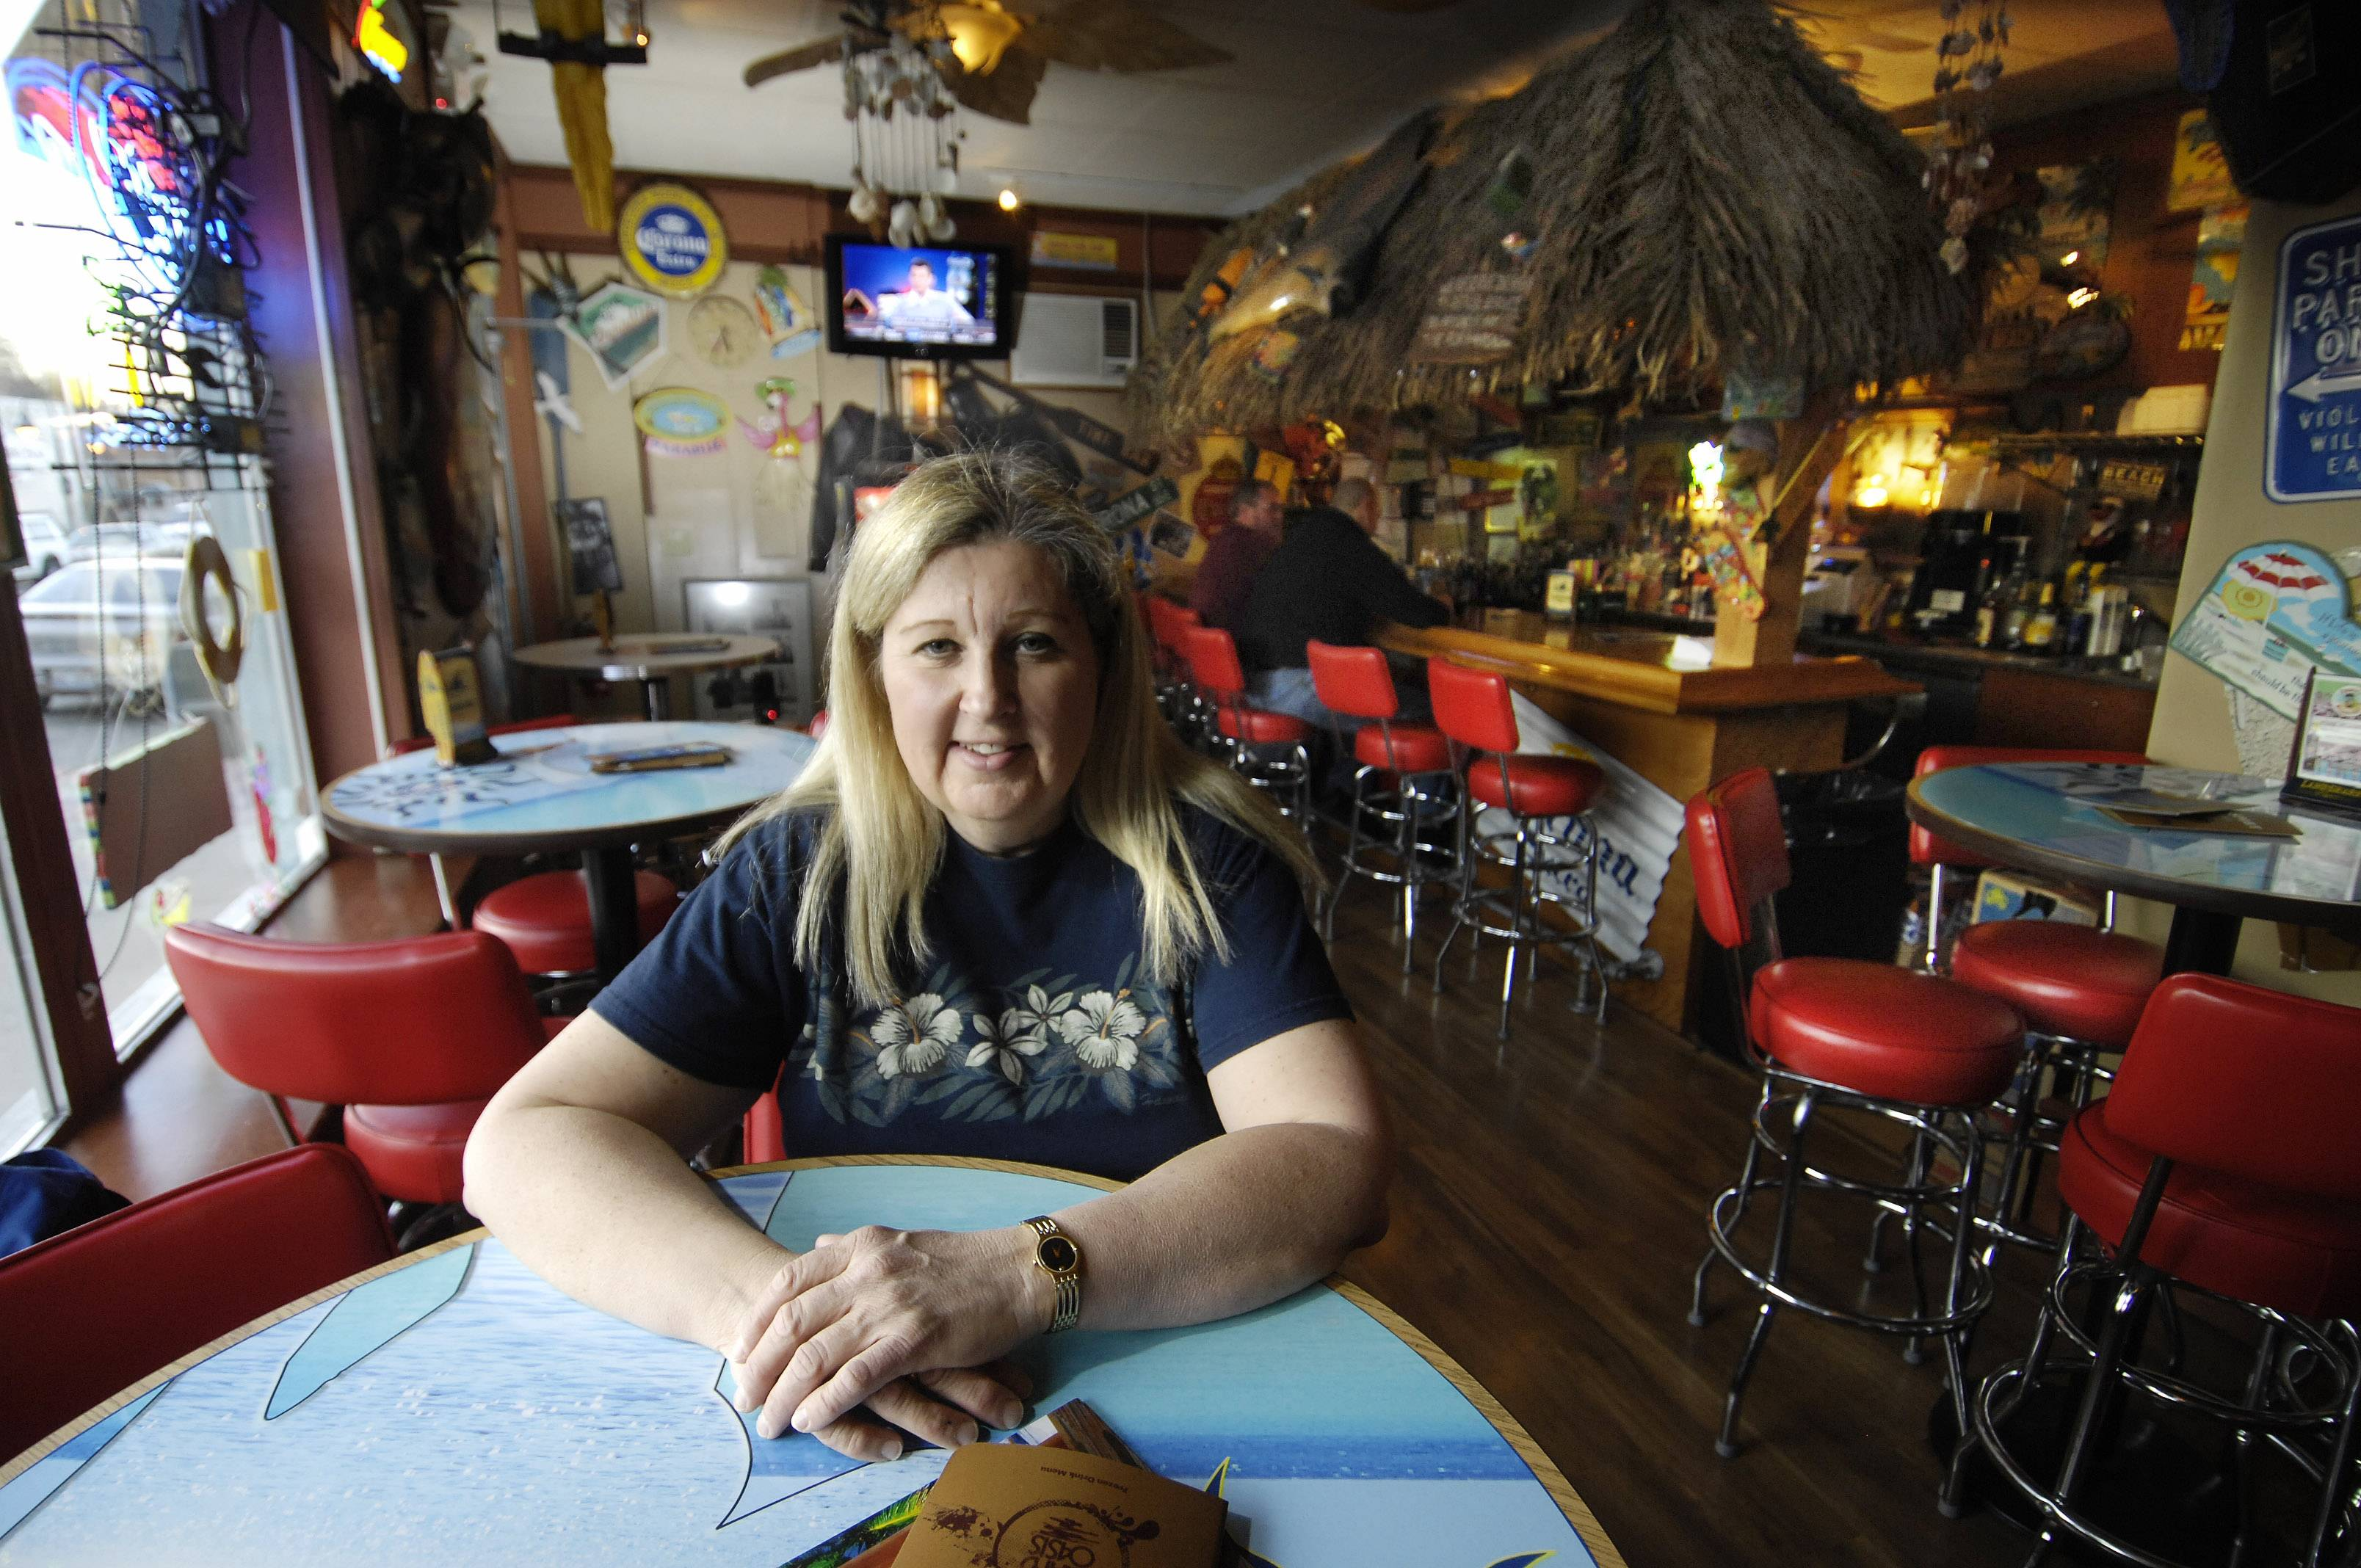 Dawn Humer of Dawn's Beach Hut in St. Charles told aldermen Monday night their new liquor laws are unfair to her small business, which has a clean record of no police calls or license violations.